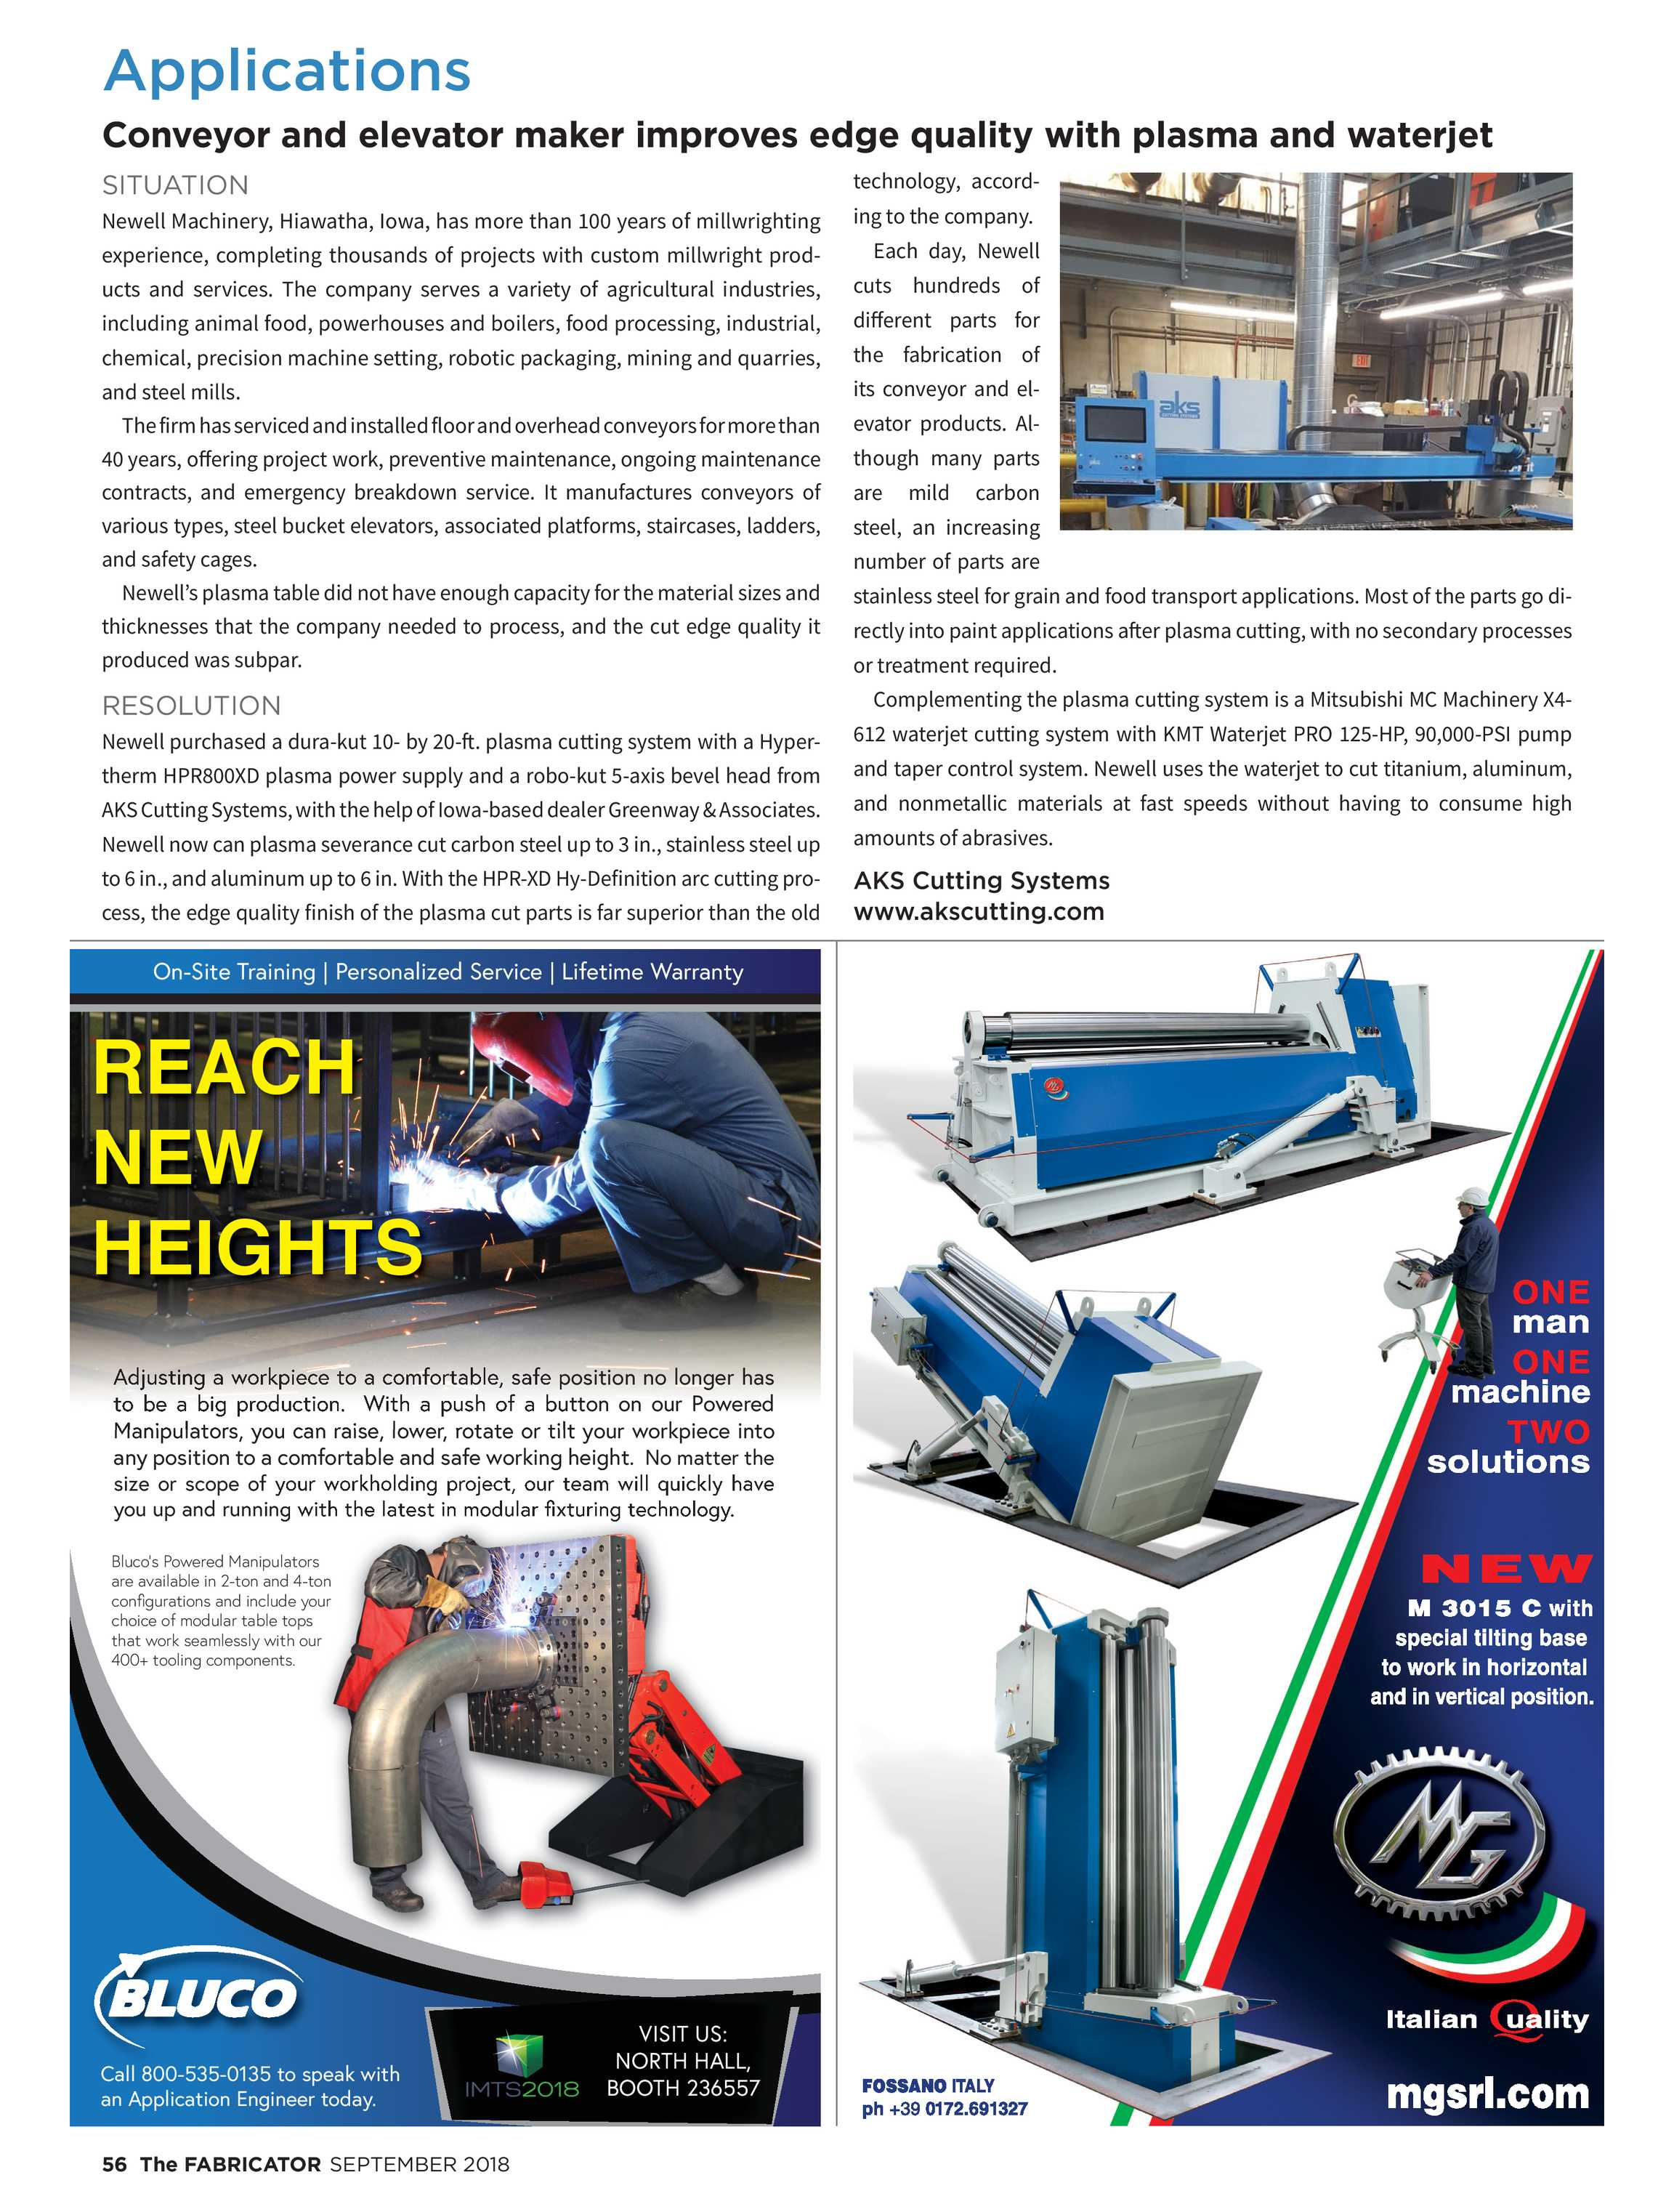 The Fabricator - September 2018 - page 56